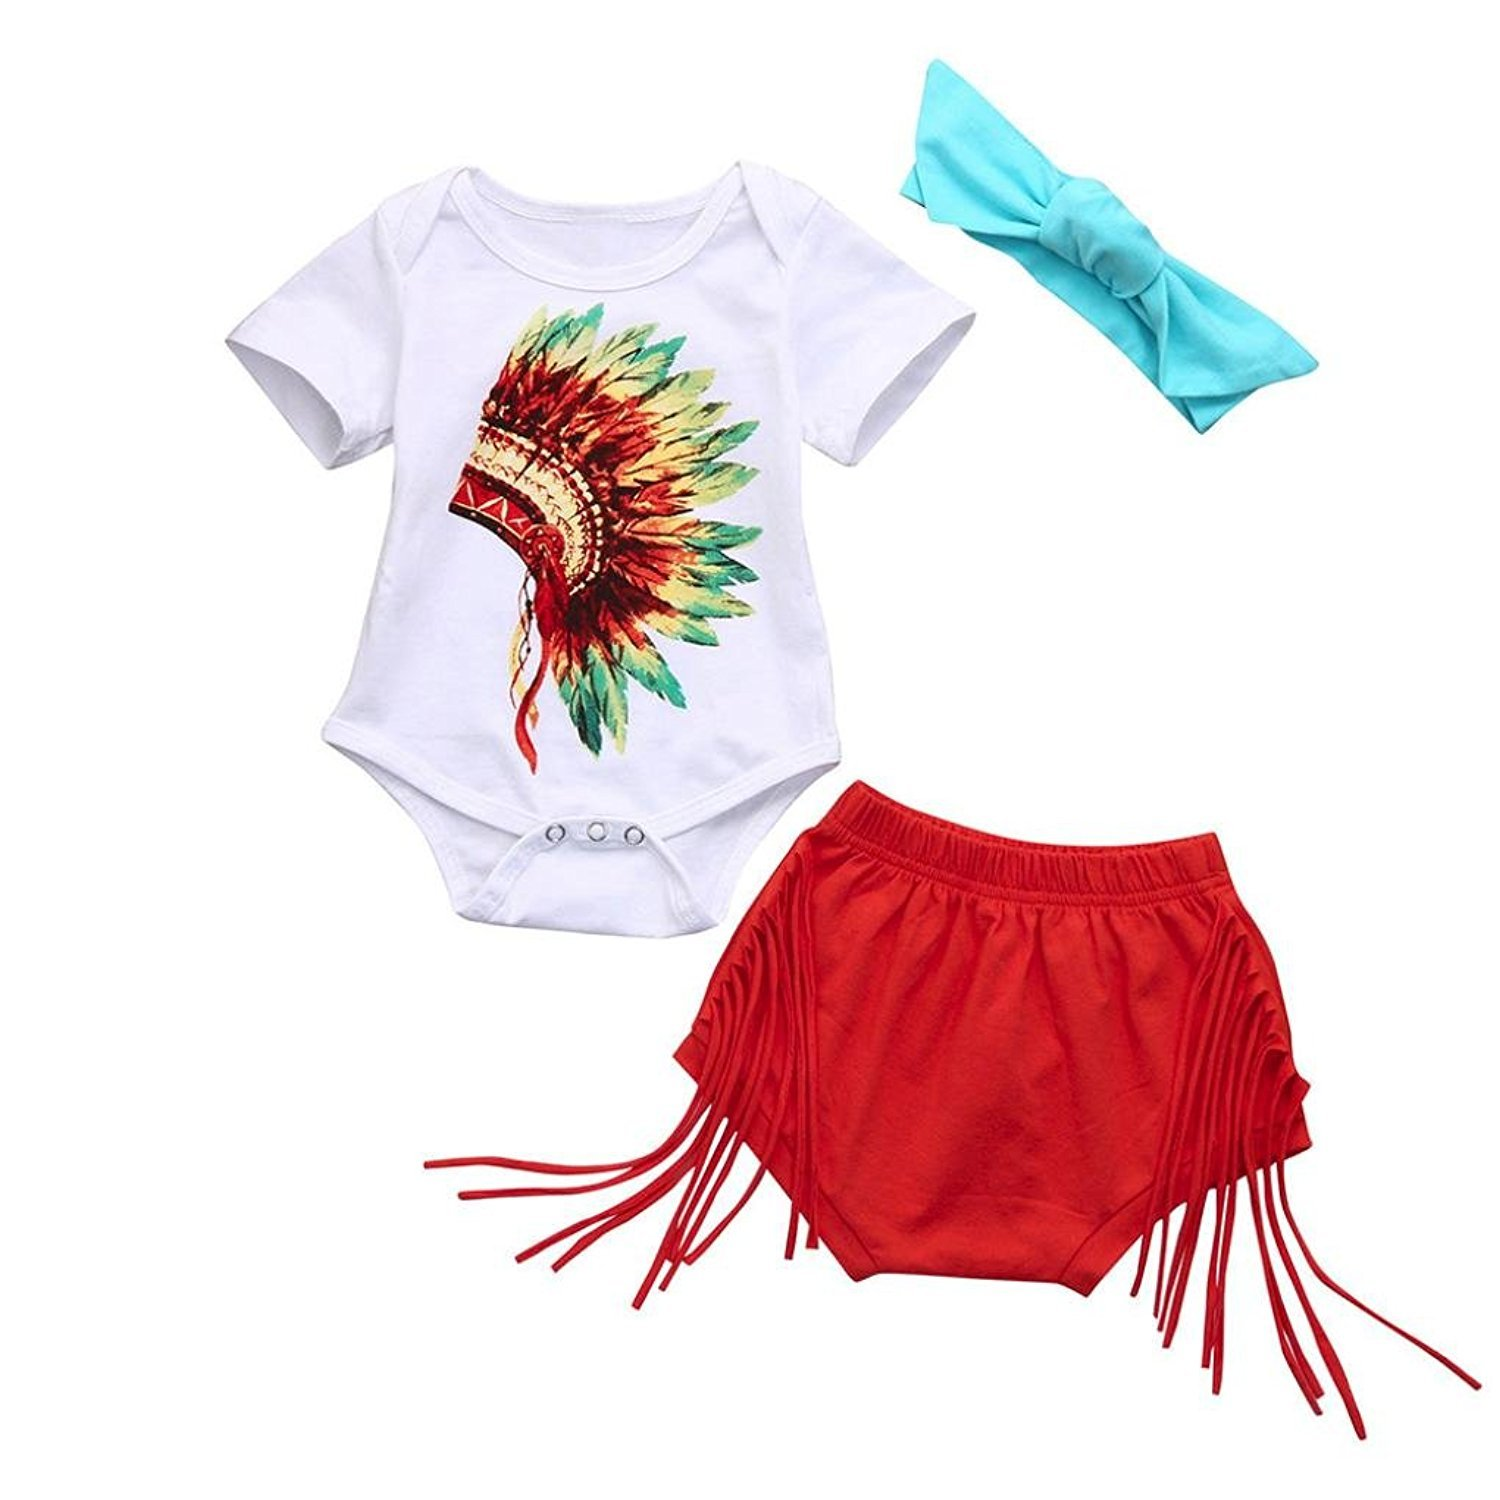 Younger Tree Newborn Infant Fashion Outfits Set Baby Girls Boys Indian Print Romper Shorts Headband Clothes Set 3Pcs